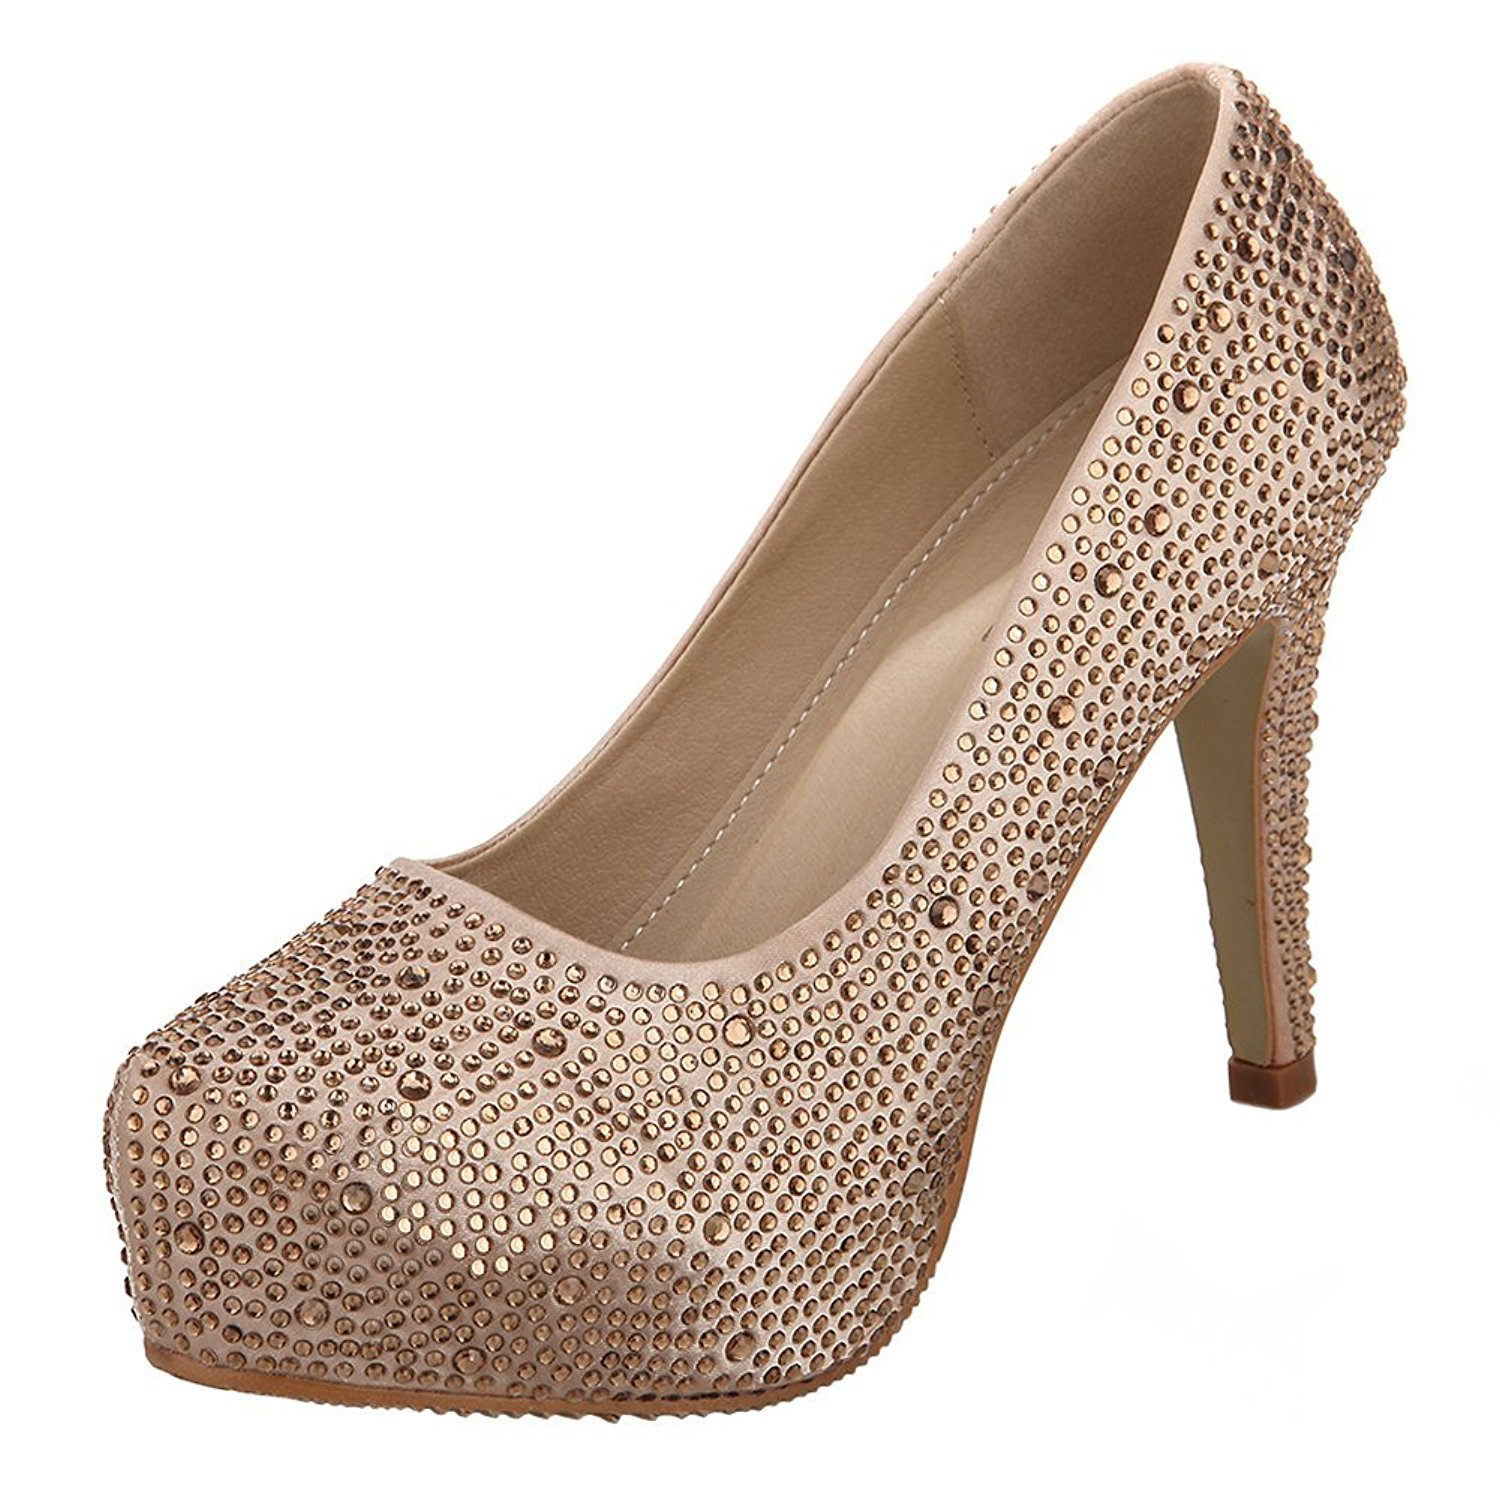 VELCANS Colourful Rhinestone Womens Platform Pumps,Bridal Shoes,Party Shoes and Wedding Shoes